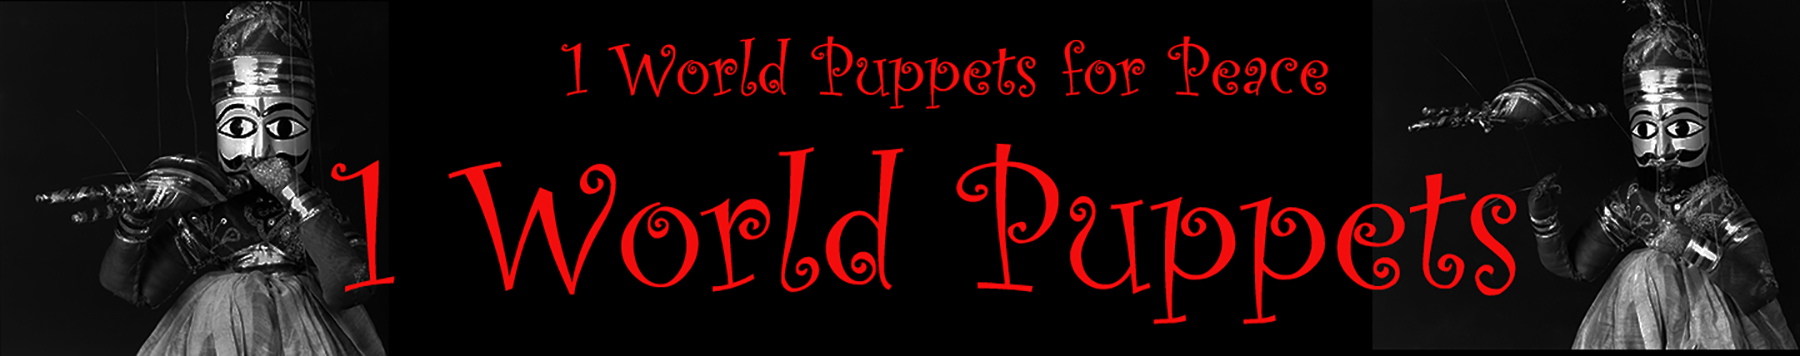 1 World Puppets and 1 World Puppets for Peace Logo title